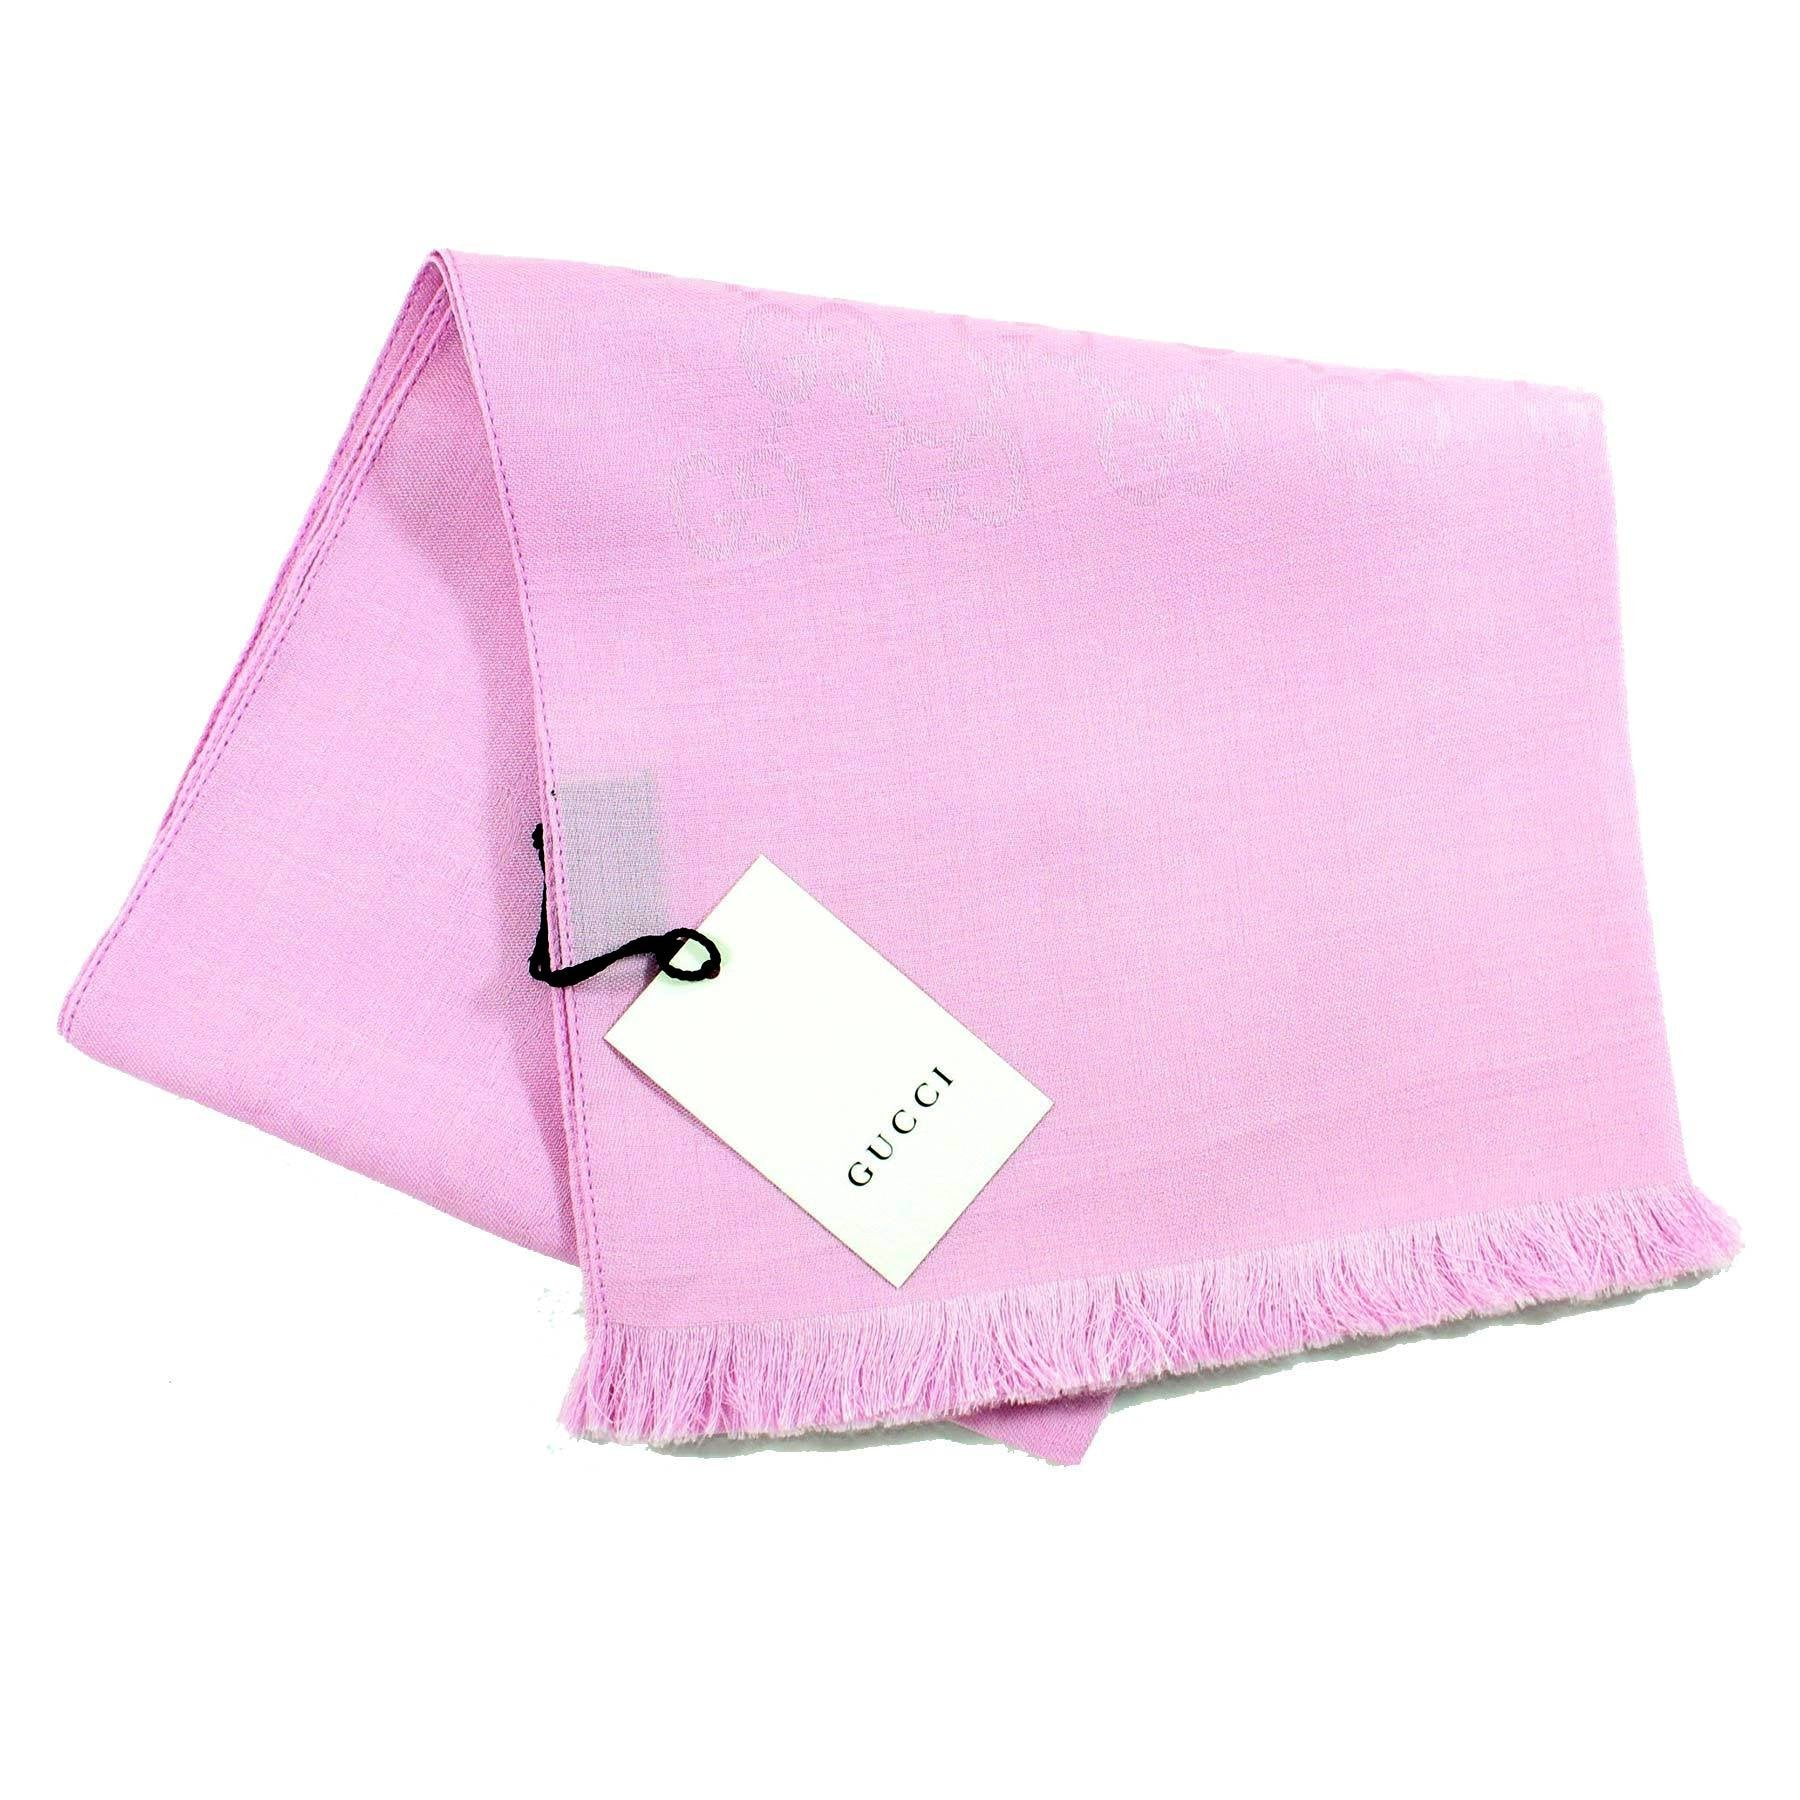 Gucci Scarf Signature Pink GG Pattern Wool Silk Shawl